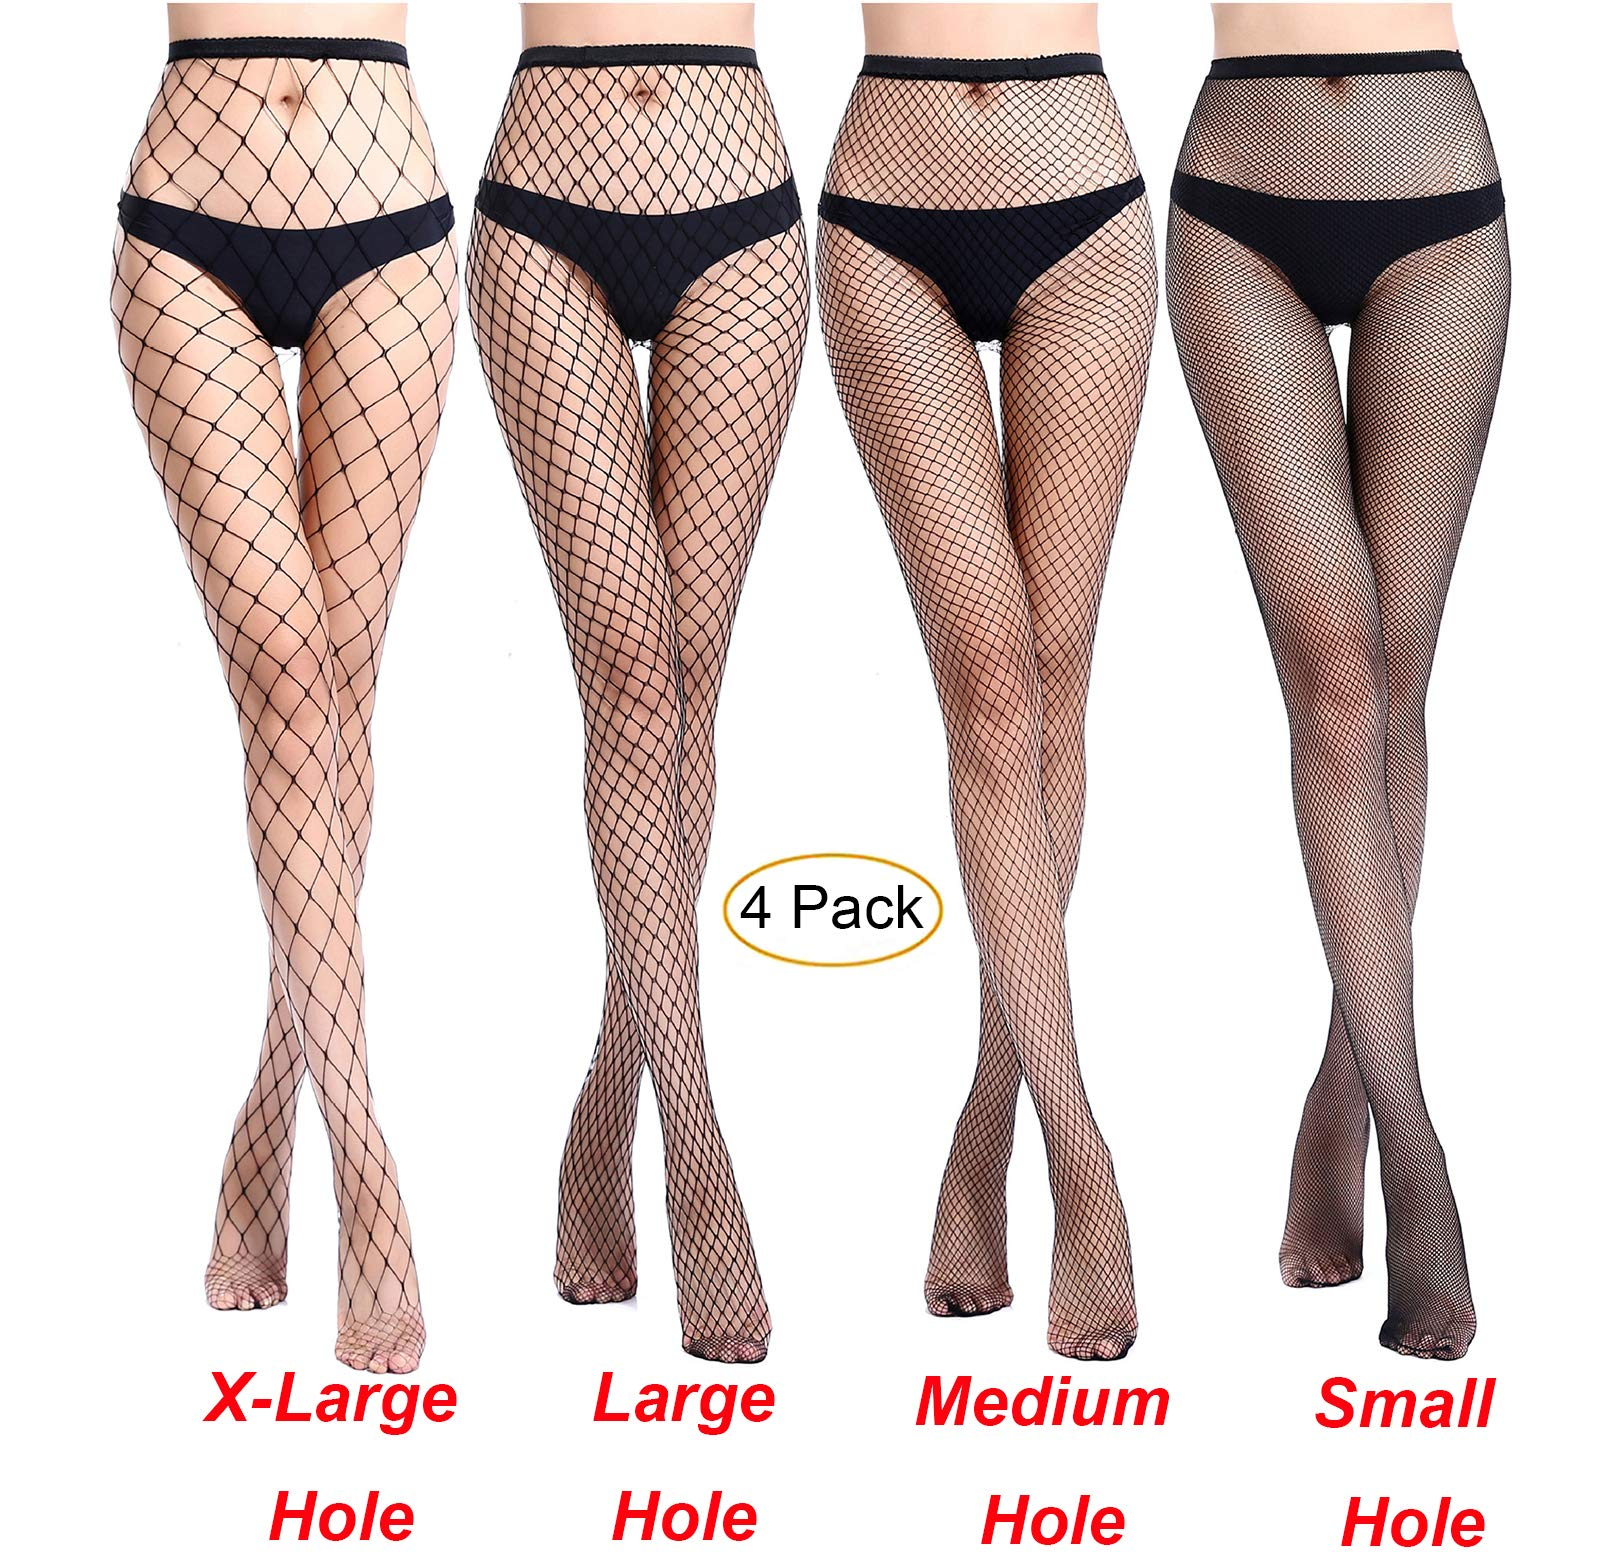 MERYLURE Black Fishnet Pantyhose 2 Pairs Women's Seamless Sheer Mesh Hollow Out Tights Stockings (One Size, x-large+large+medium+small Hole,4 Pack)